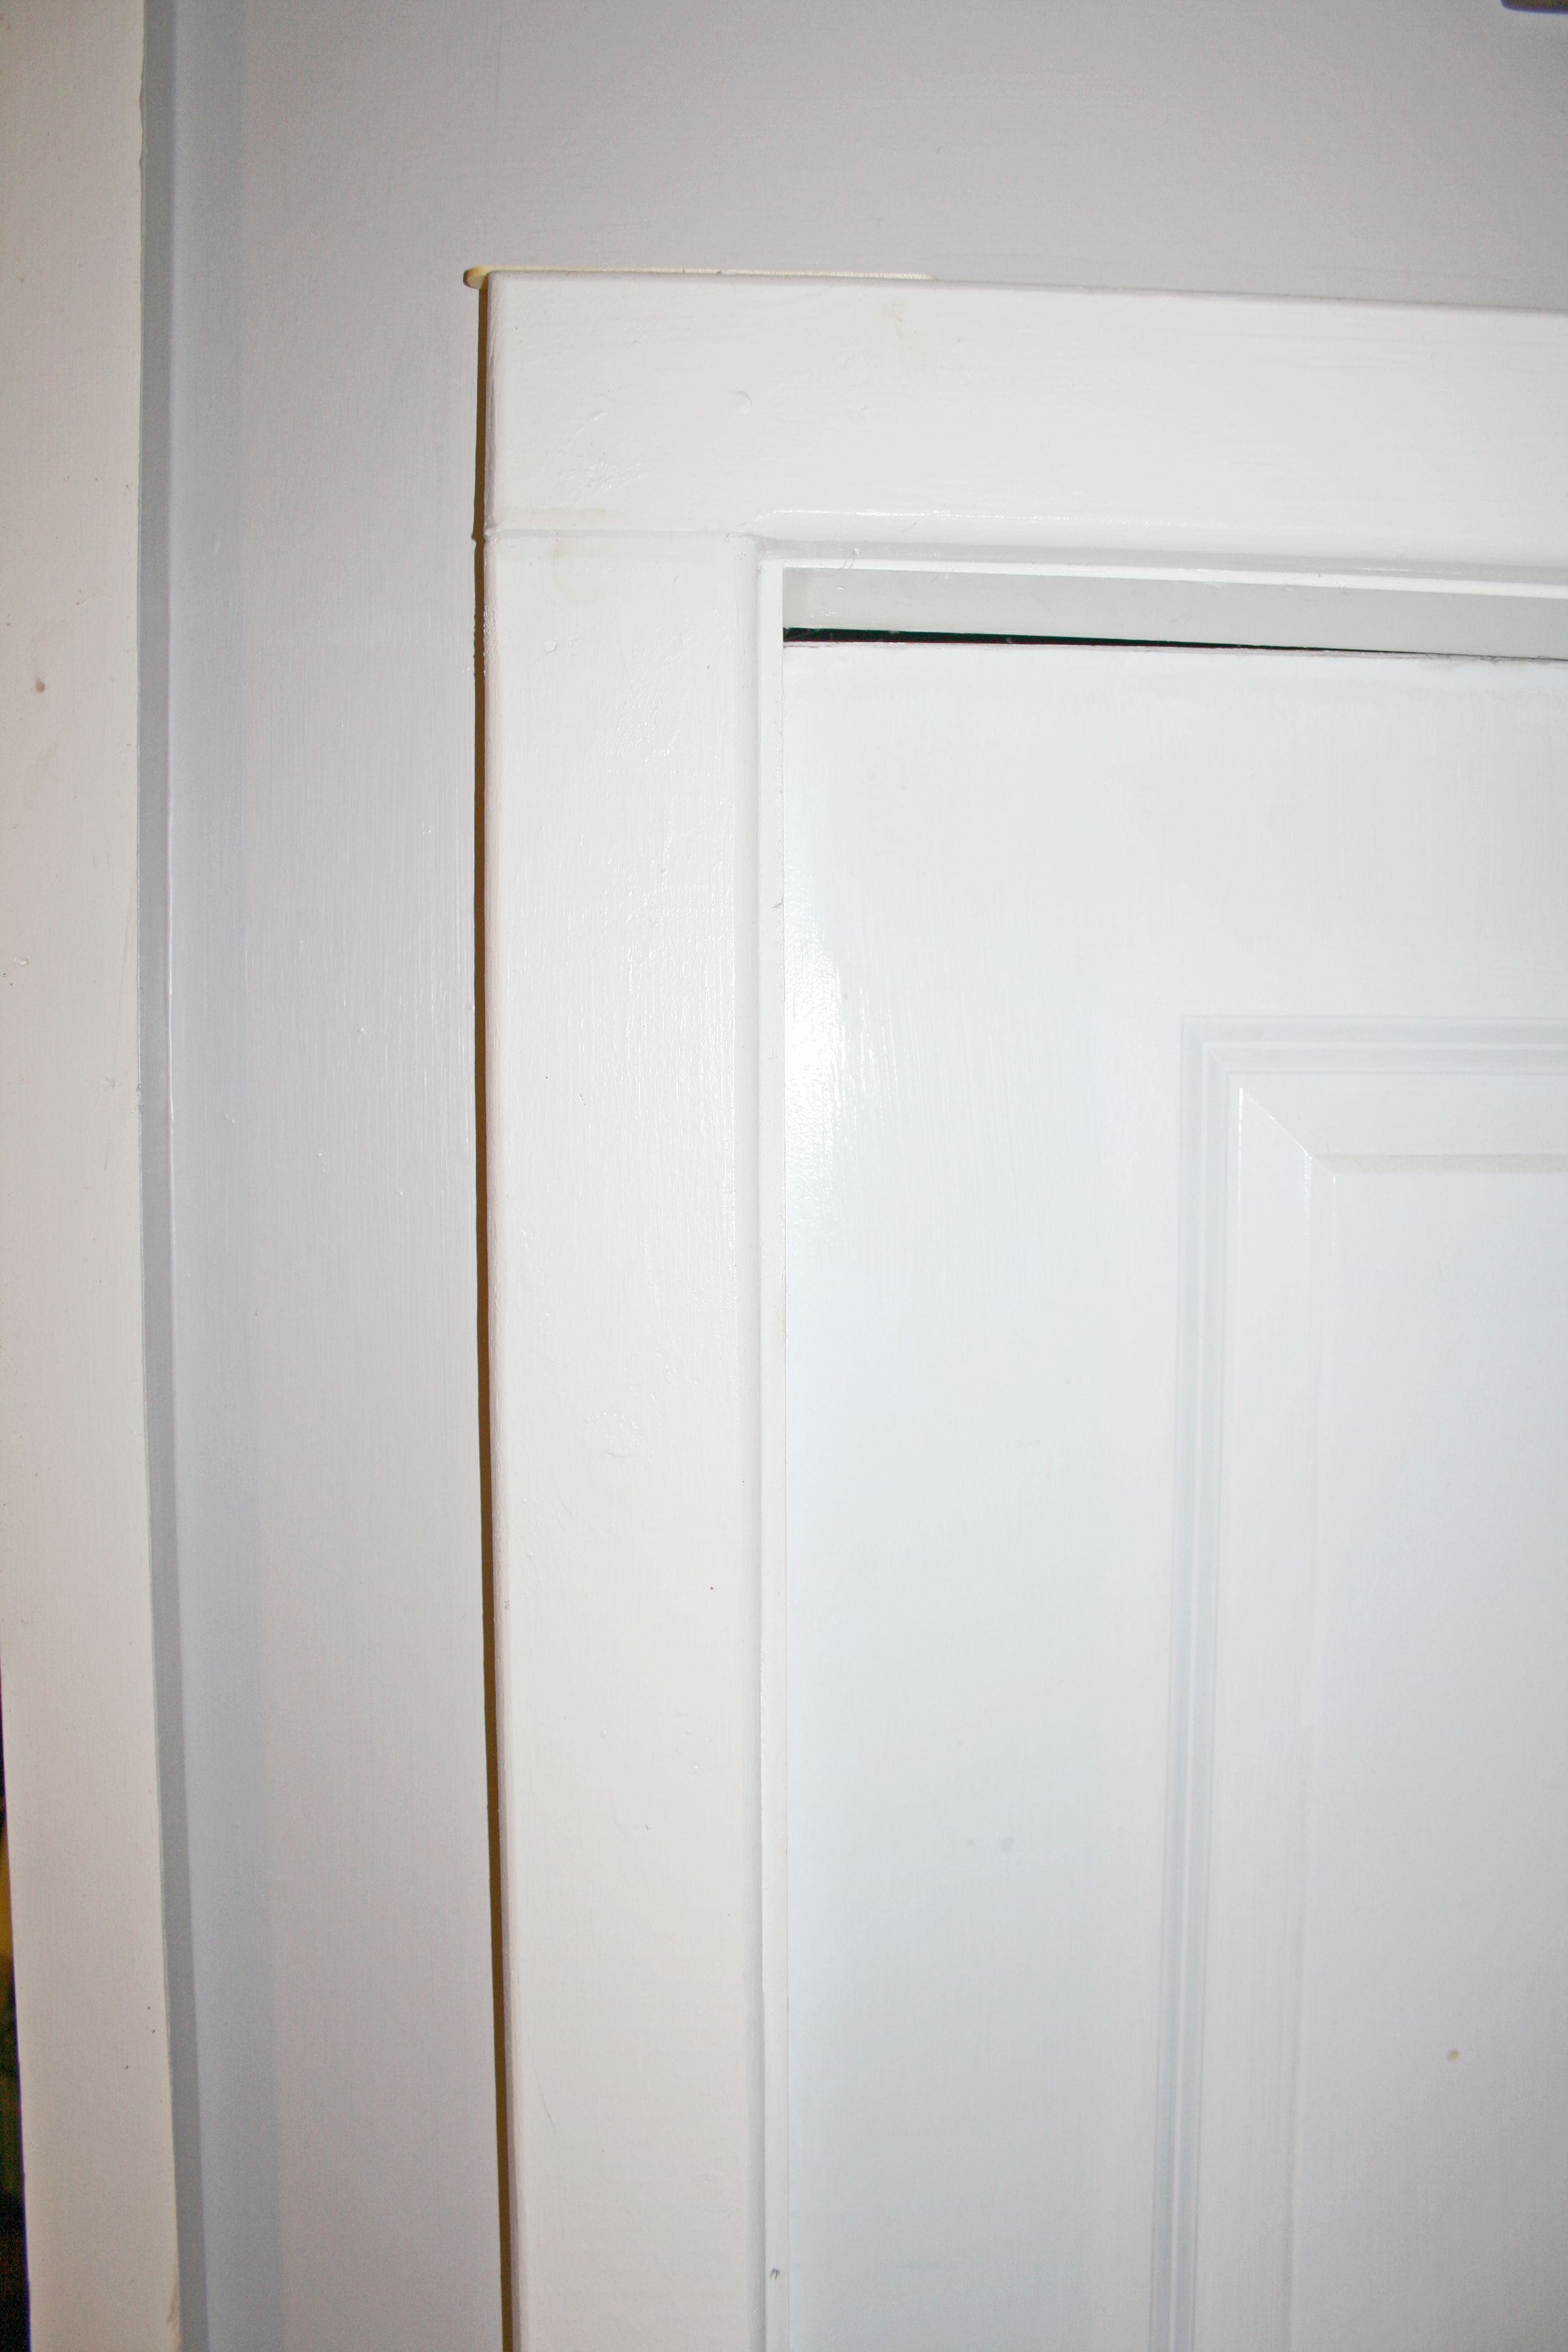 Keep popsicle sticks on the top of each door frame to